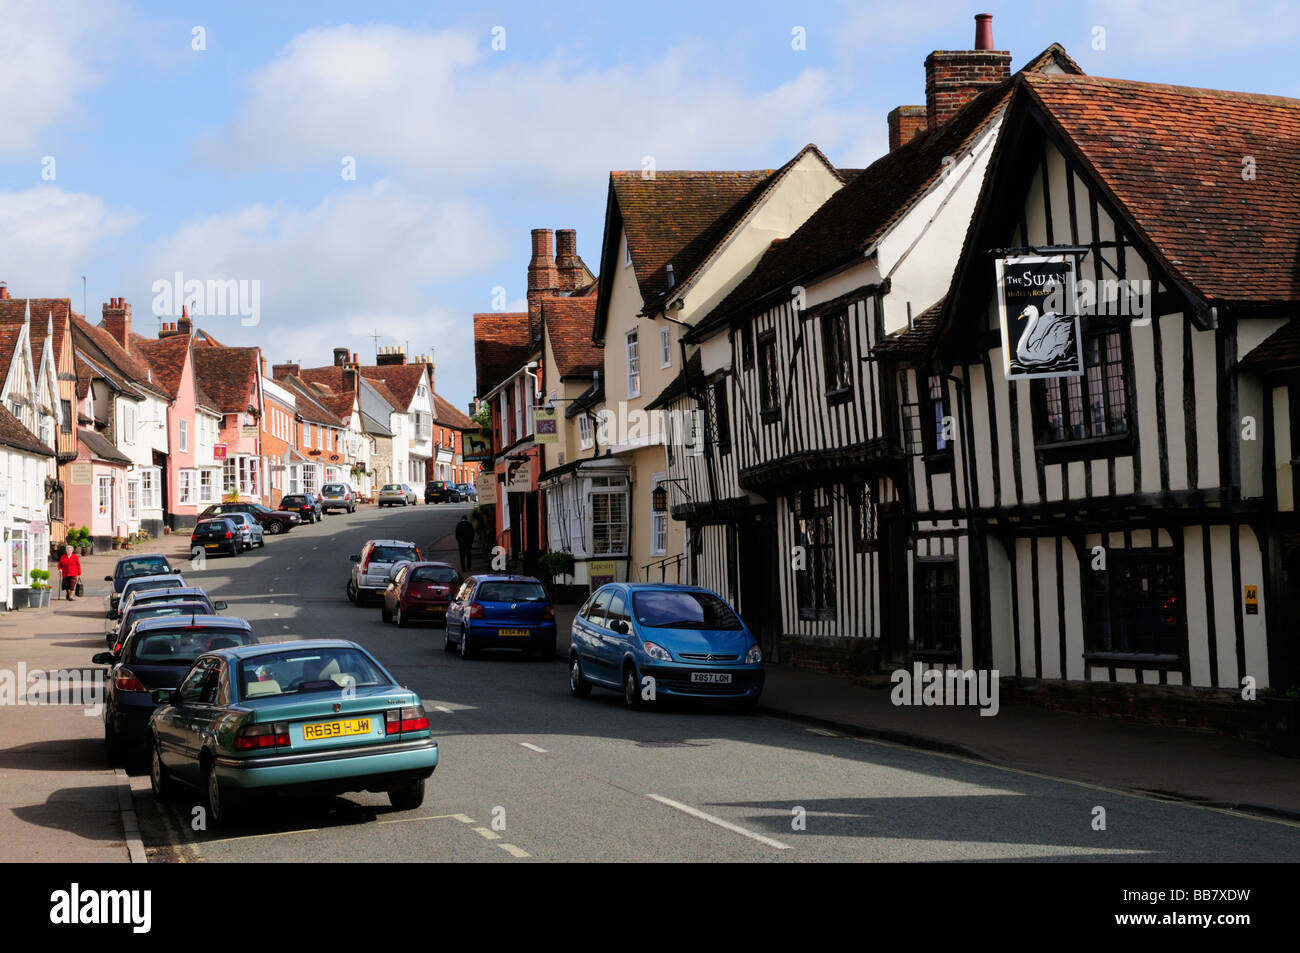 Village of Lavenham Suffolk England UK - Stock Image